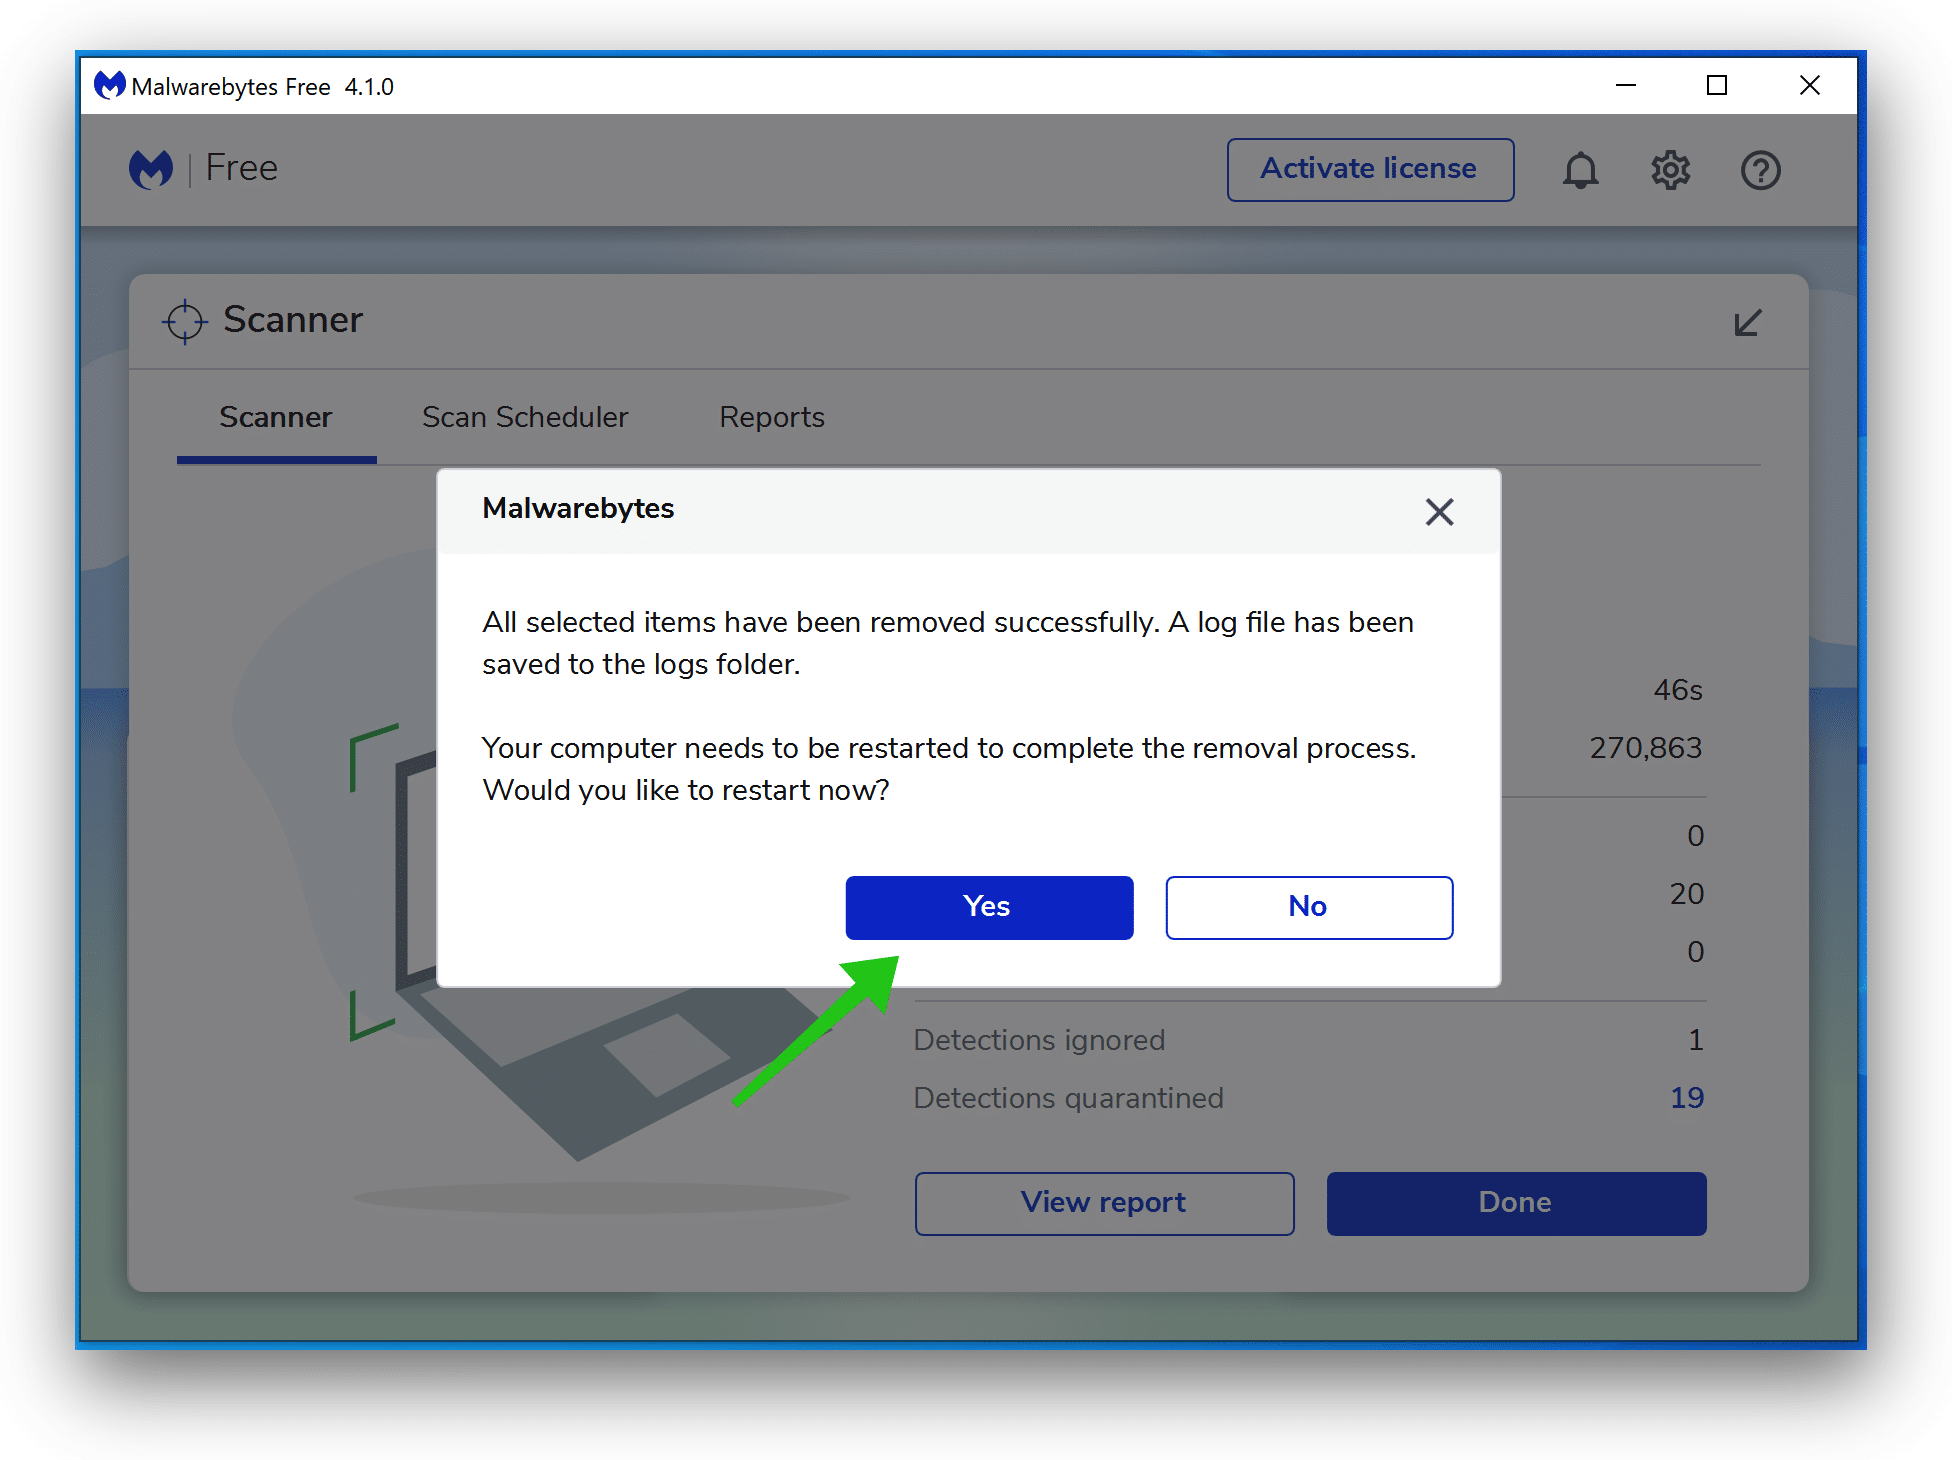 Starten Sie Windows neu - Malwarebytes